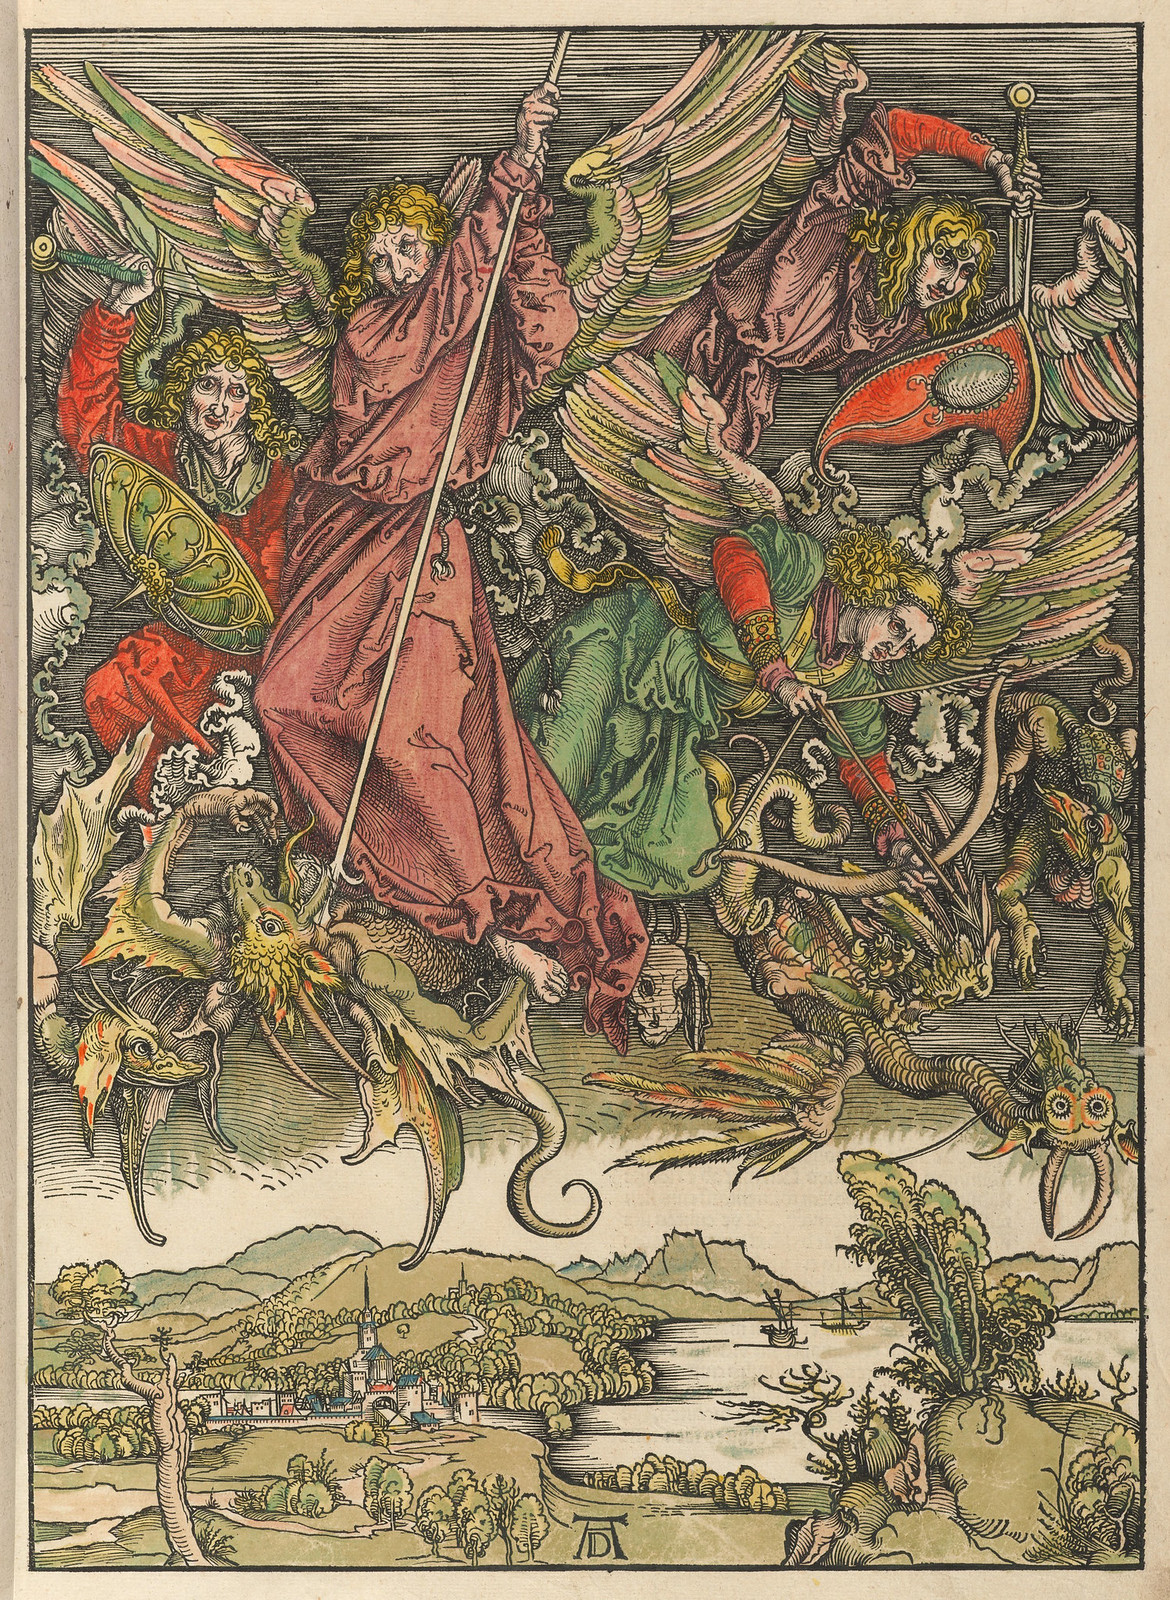 Albrecht Dürer - St Michael fighting the dragon, Plate eleven of fifteen from the Latin edition of The Apocalypse series, hand colored, printed 1511